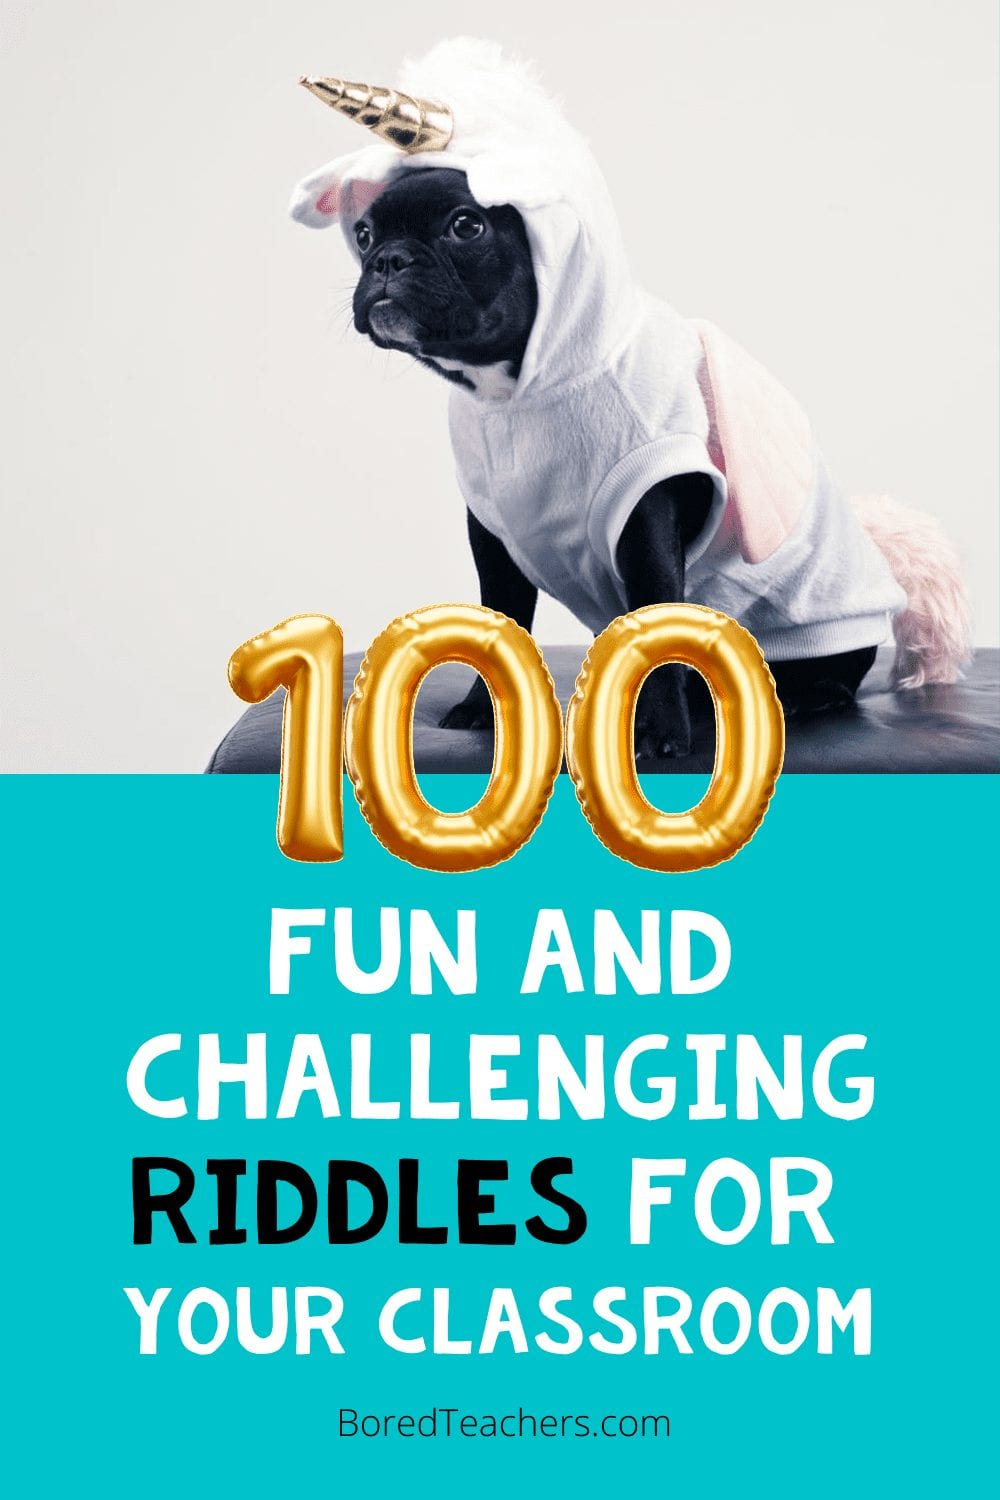 Fun riddles for Your Classroom